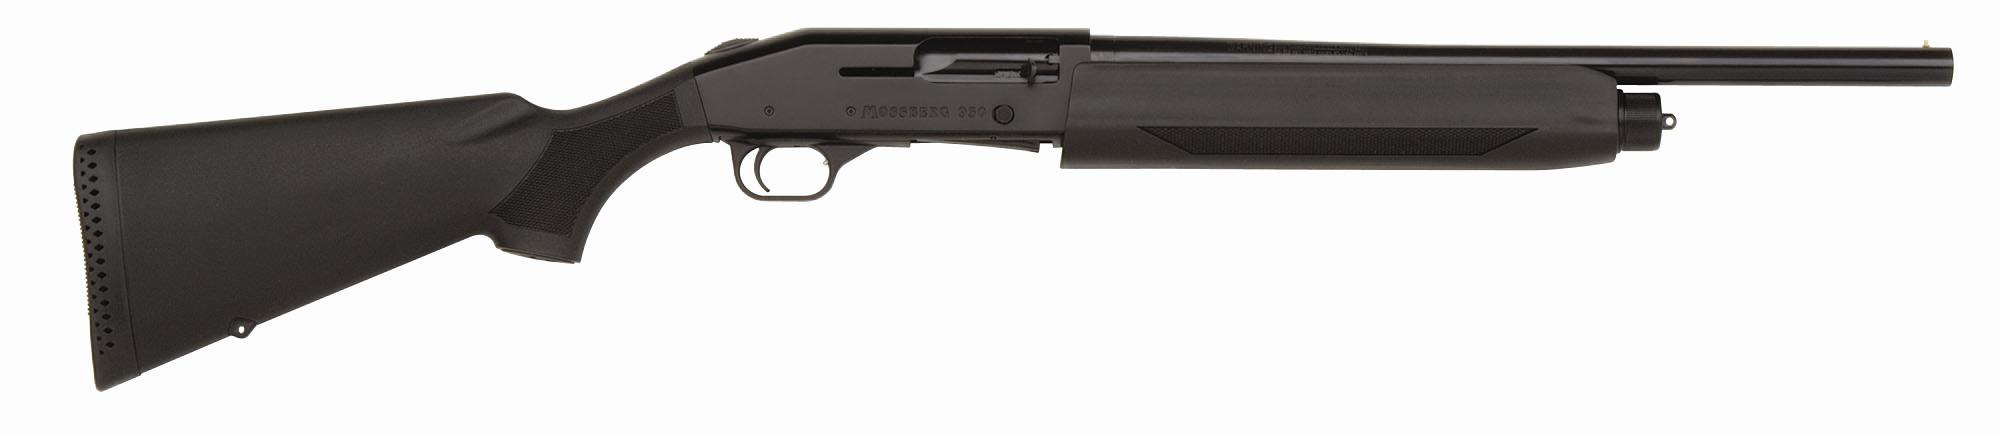 New shotgun, what's the best way to get a light mounted on it?  Mossberg 930 HS model-85320.jpg